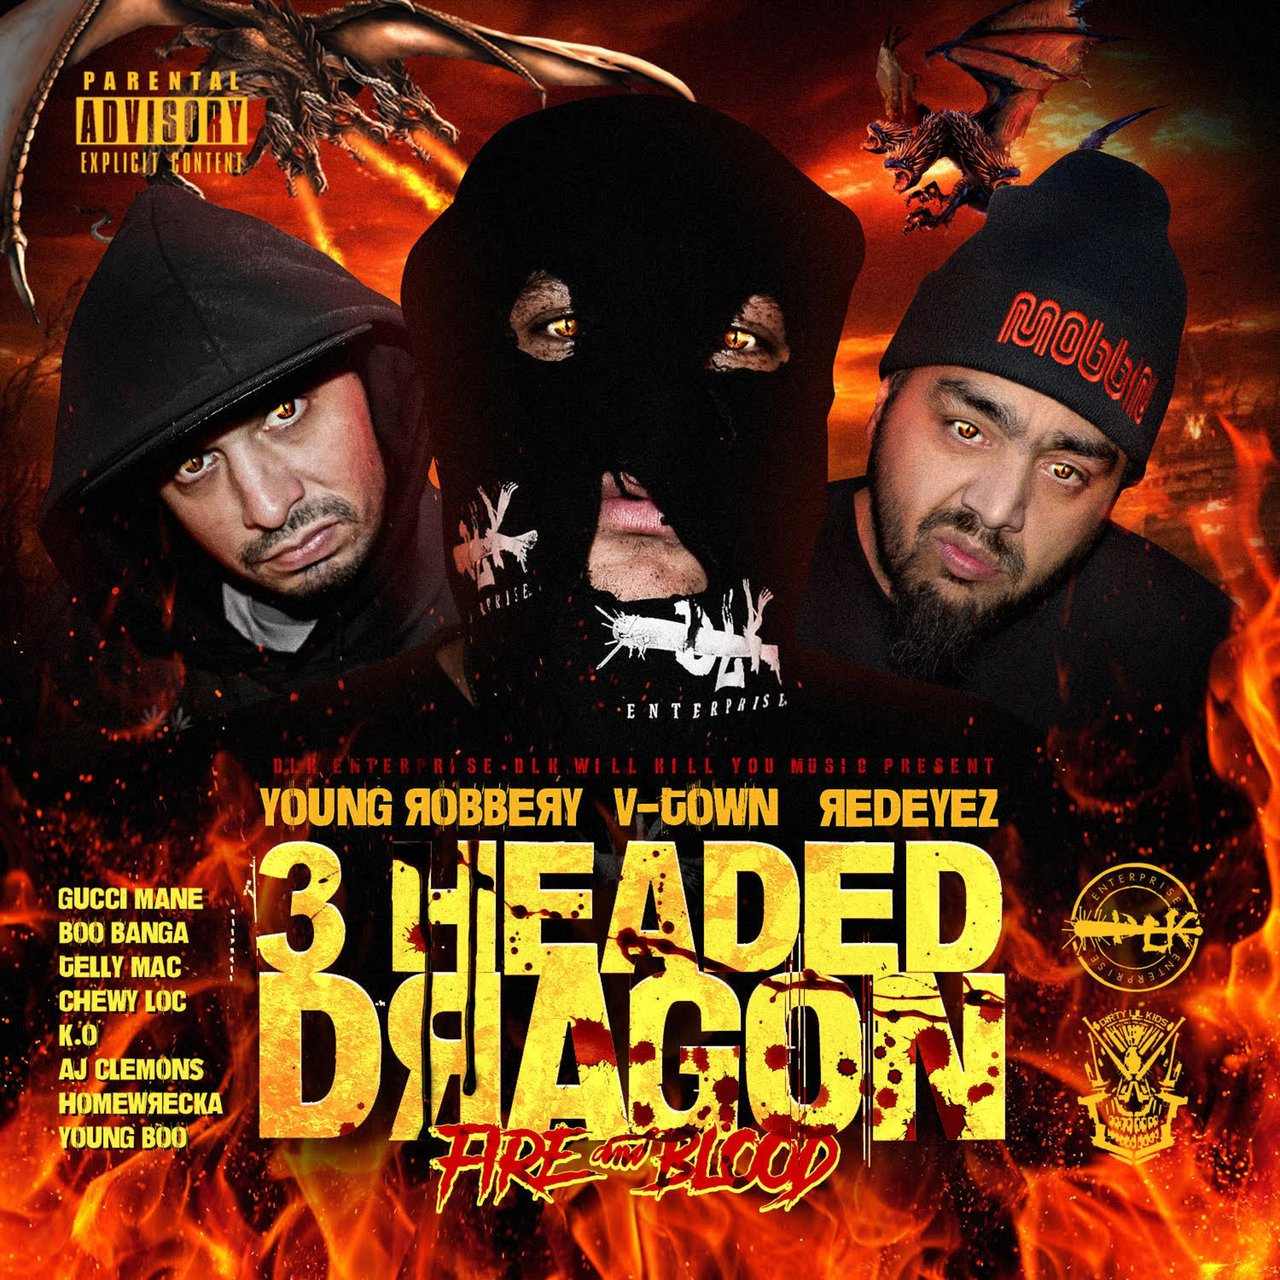 Dlk Will Kill You Presents: 3 Headed Dragon